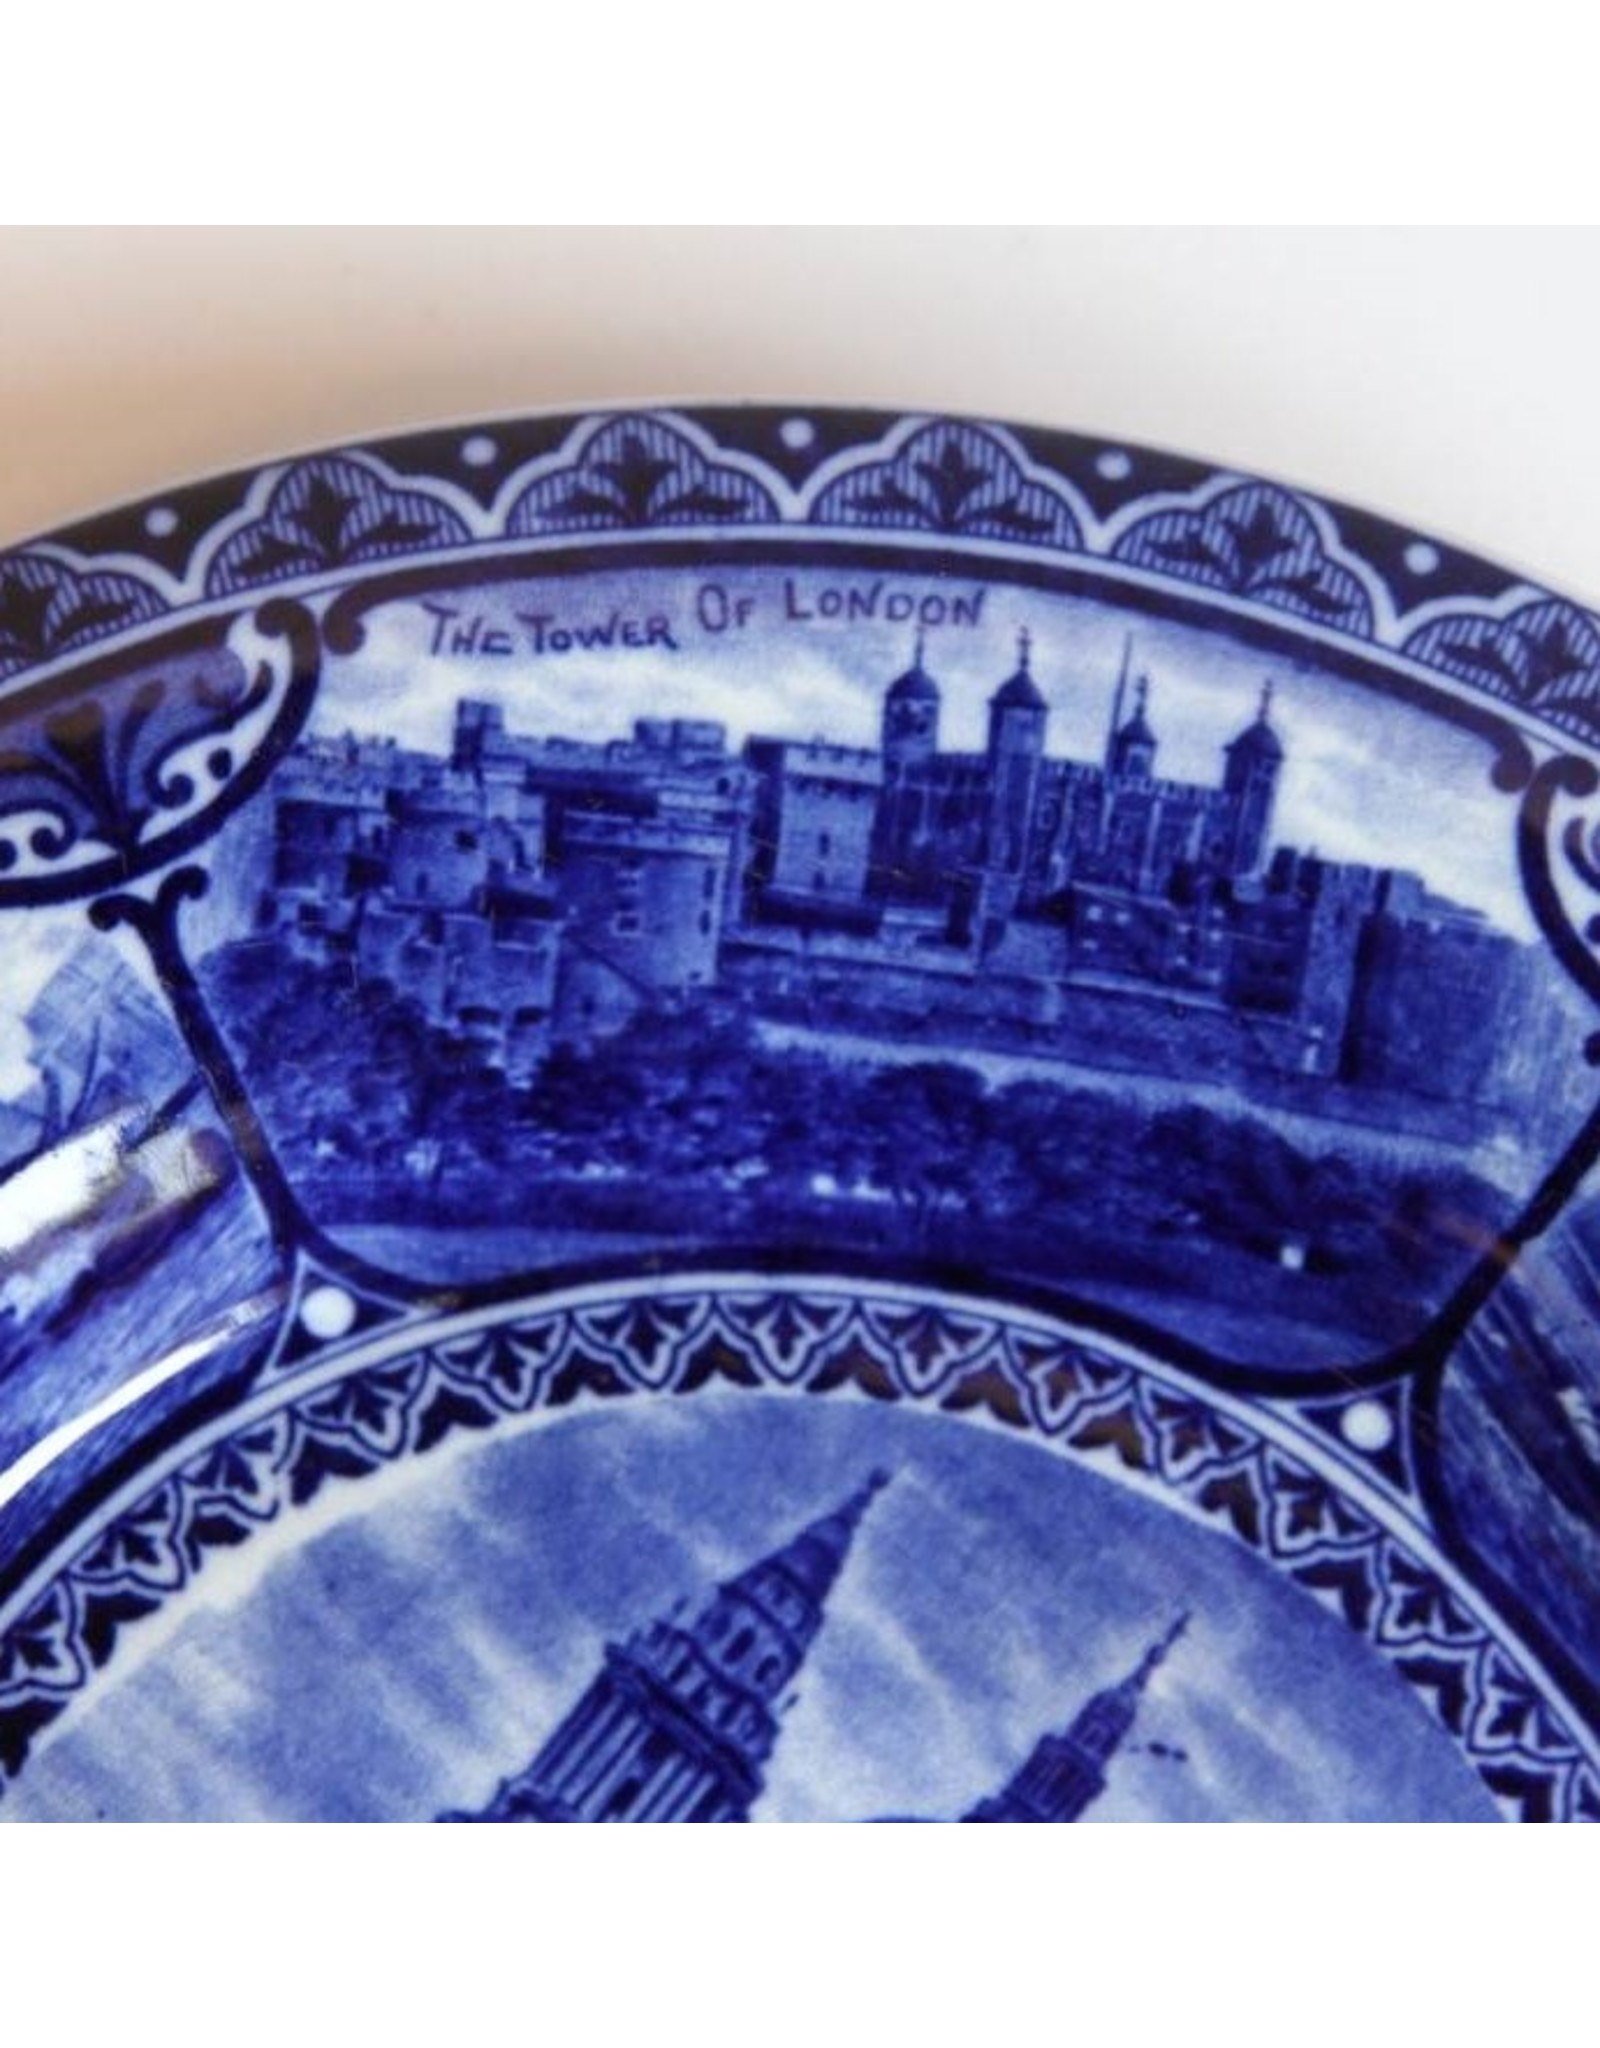 Plate - Views of London Collector Plate, Sampson Hancock & Sons, 1891-1935, blue